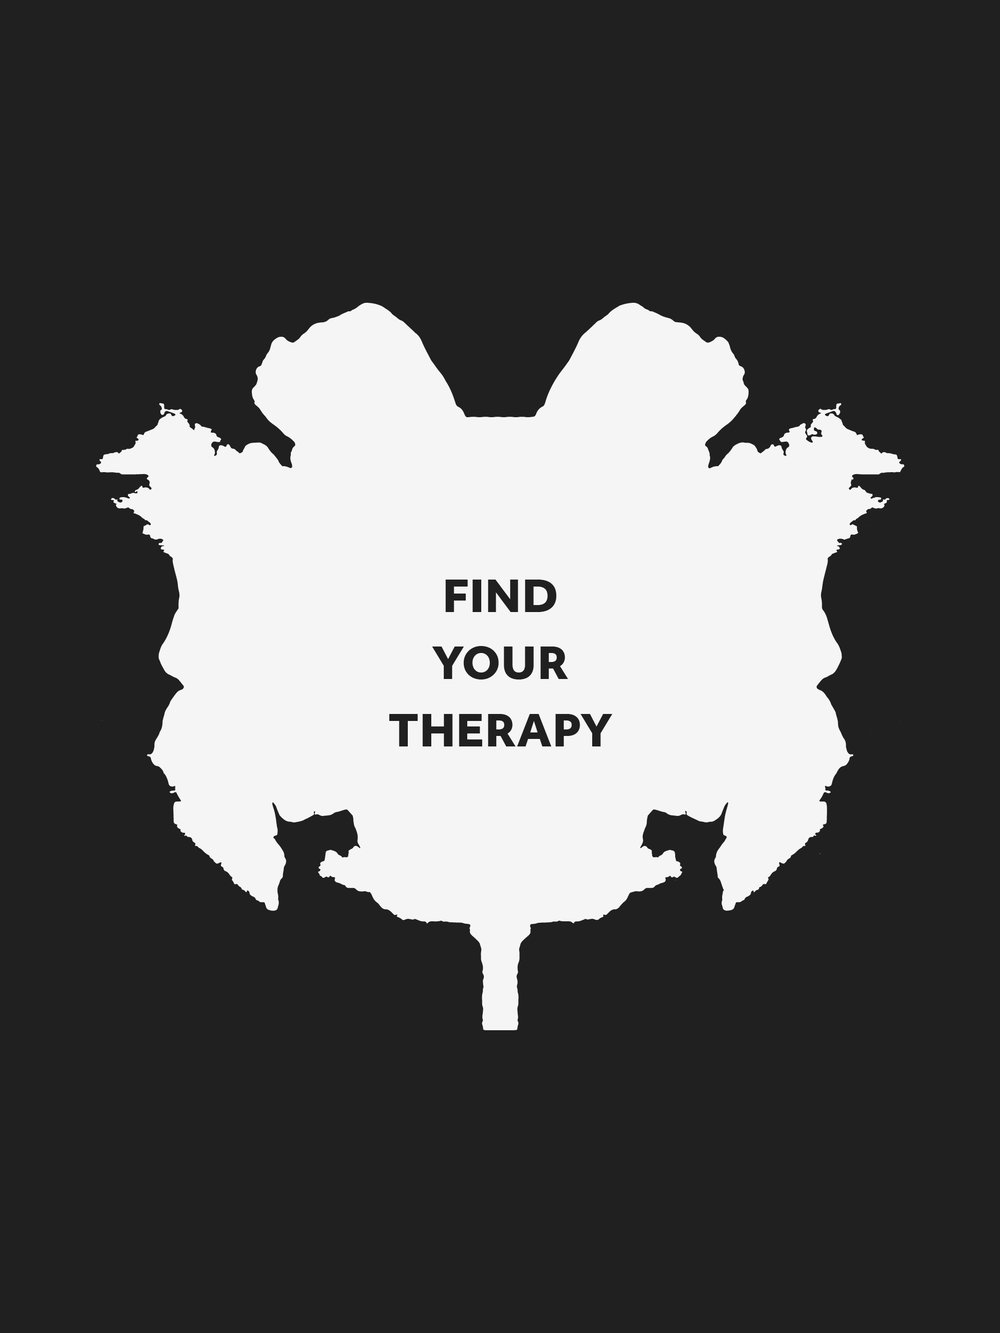 X Therapy Graphic Design   Trout + Taylor www.troutandtaylor.com